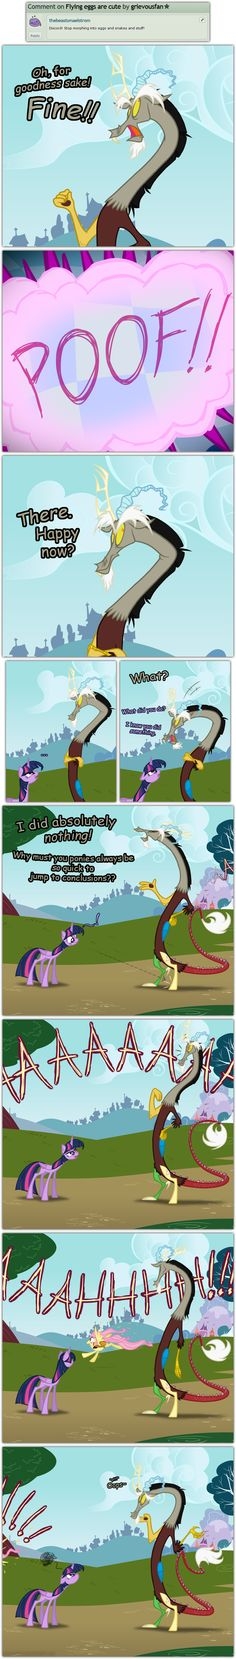 Straining Friendships: A How-To by grievousfan on DeviantArt